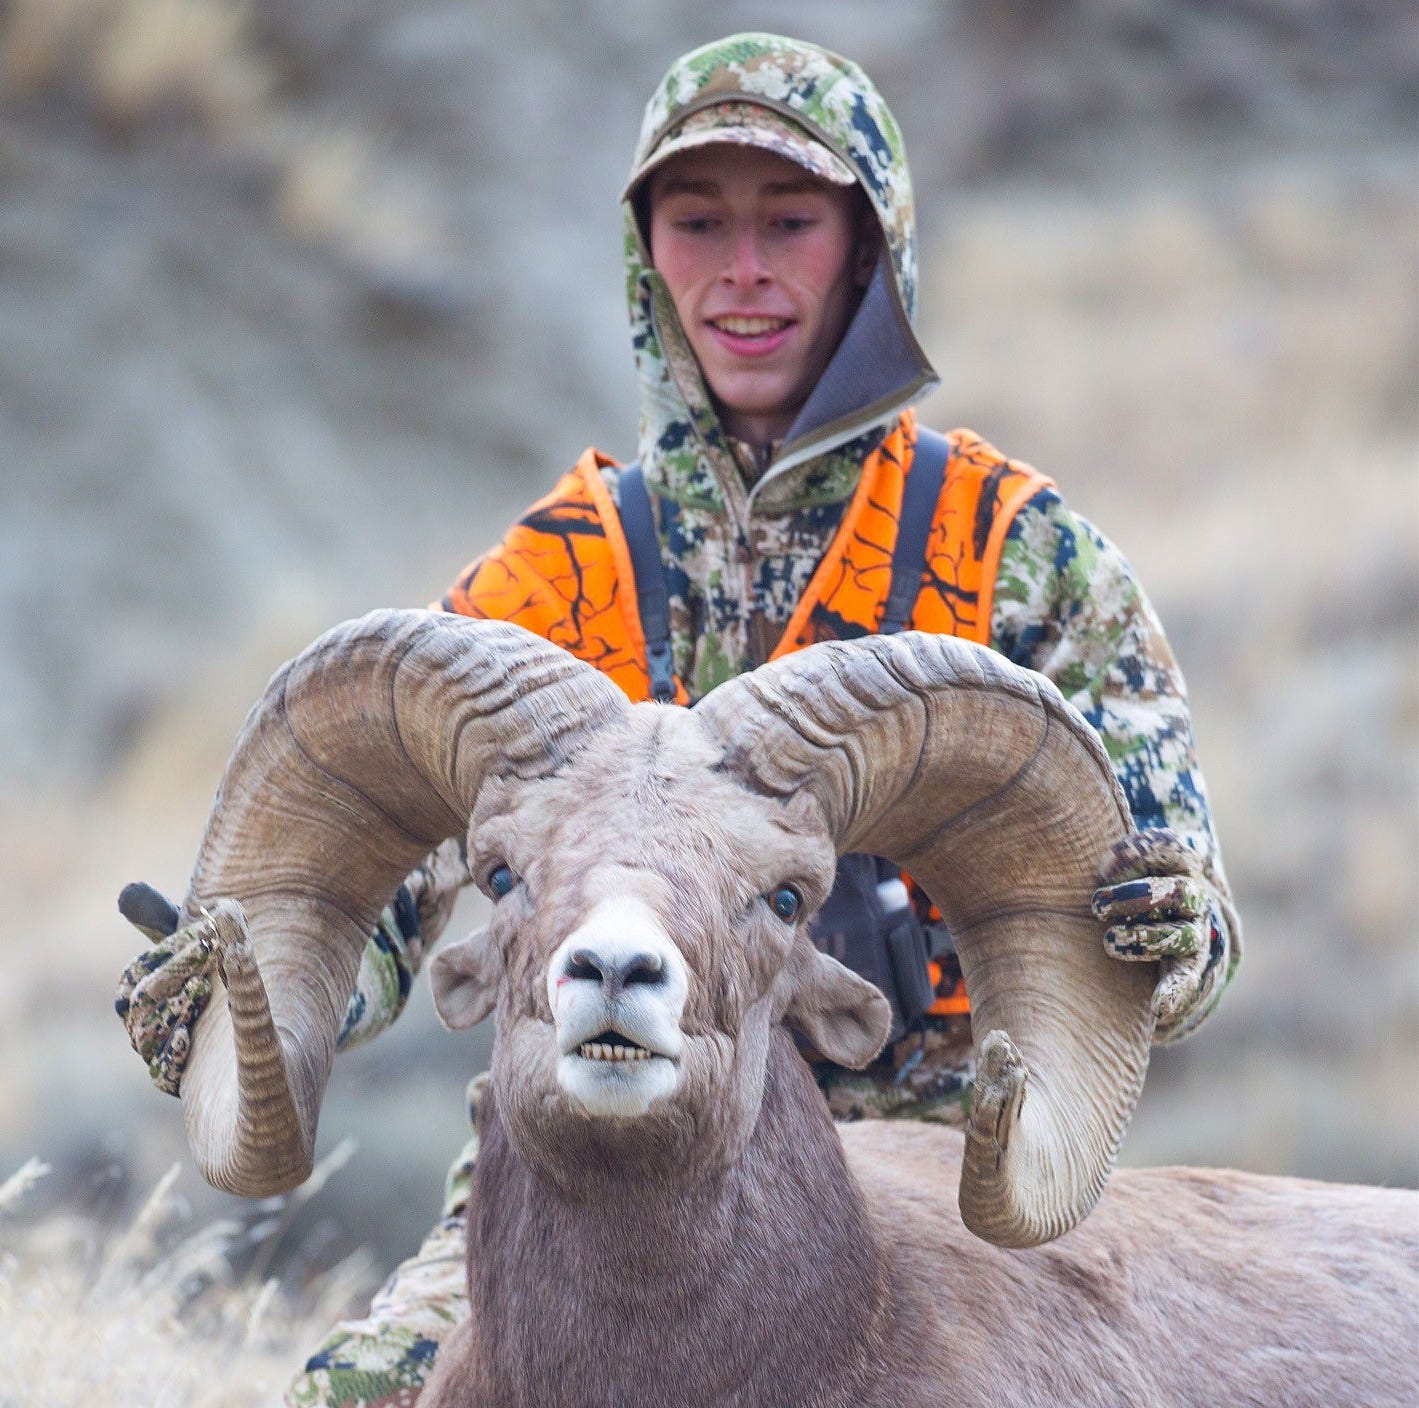 20-year-old Montana hunter's Missouri River Breaks bighorn ram ties world record